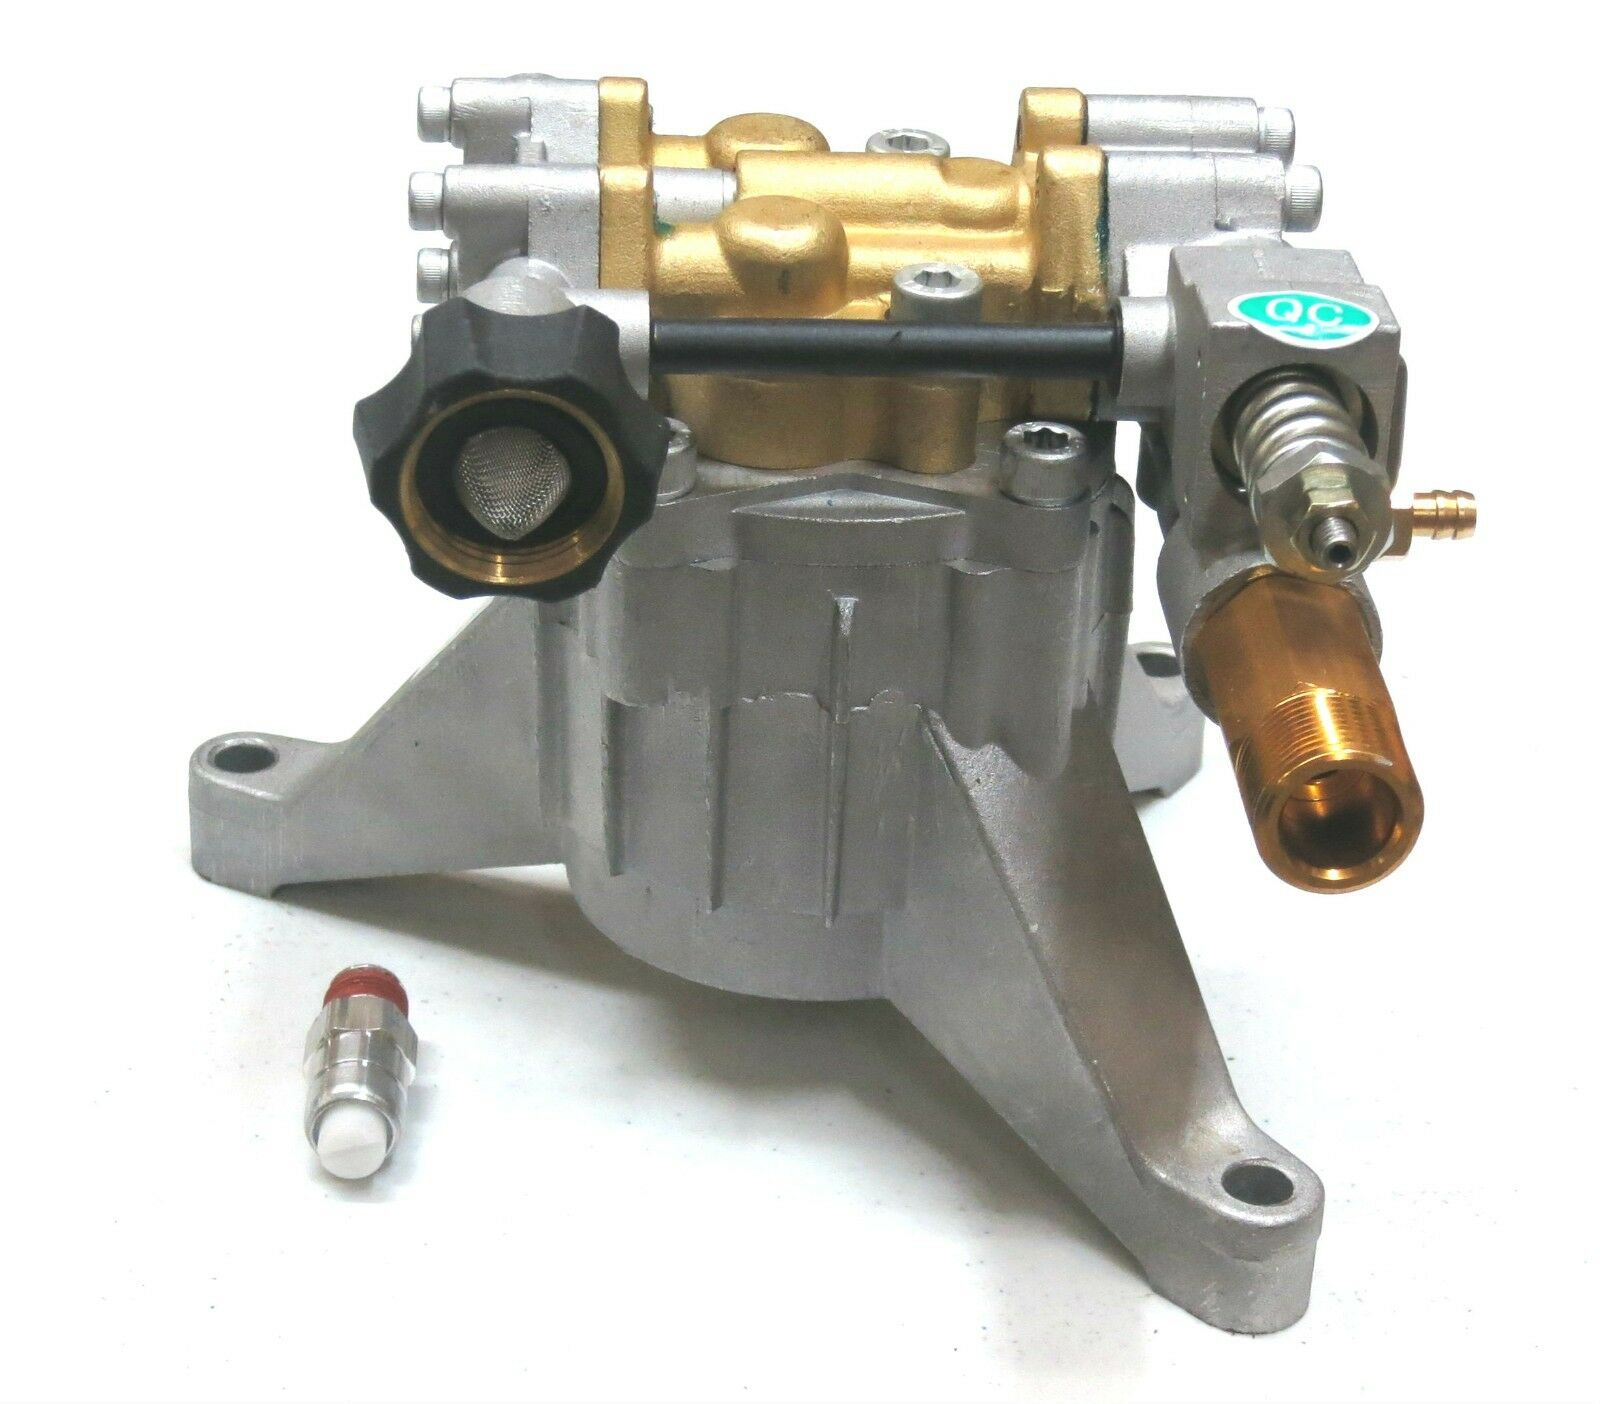 3100 PSI POWER PRESSURE WASHER WATER PUMP Upgraded Excell Devilbiss EXVRB2321-1